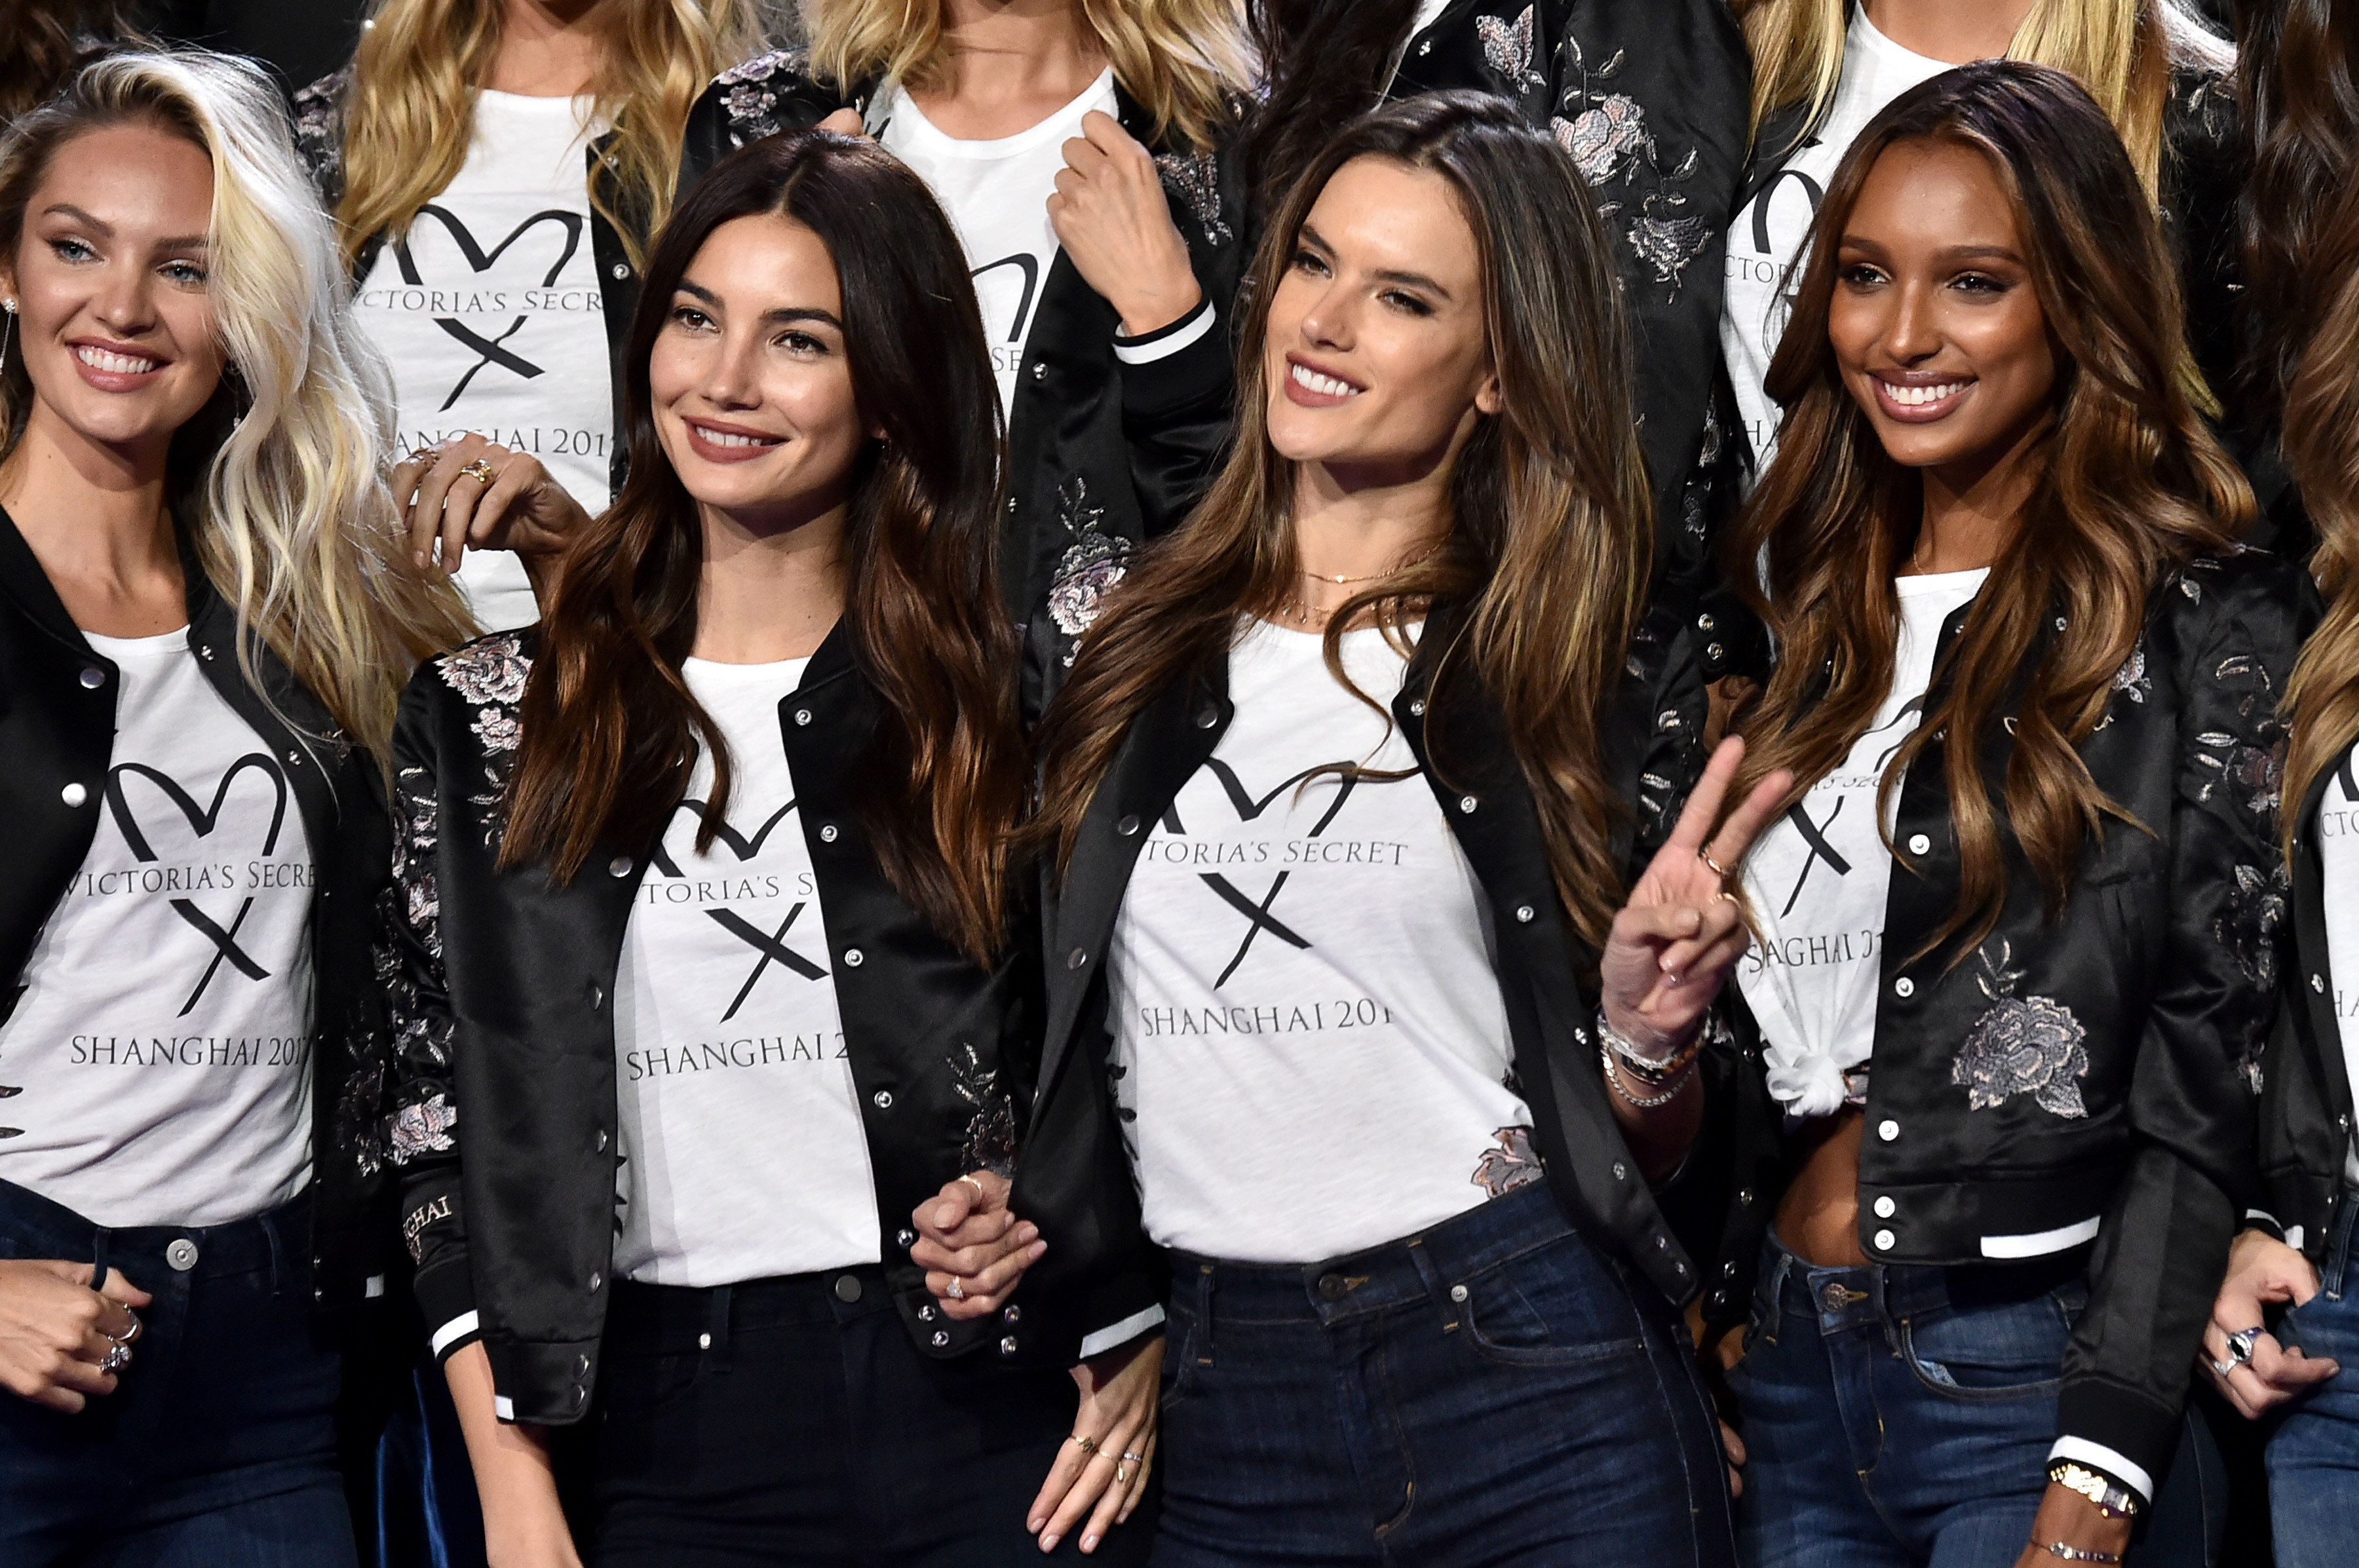 SHANGHAI, CHINA - NOVEMBER 18: Candice Swanpoel, Lily Aldridge, Alessandra Ambrosio and Jasmine Tookes pose during the All Model Appearance At Mercedes-Benz Arena on November 18, 2017 in Shanghai, China.  (Photo by Frazer Harrison/Getty Images for Victoria's Secret)